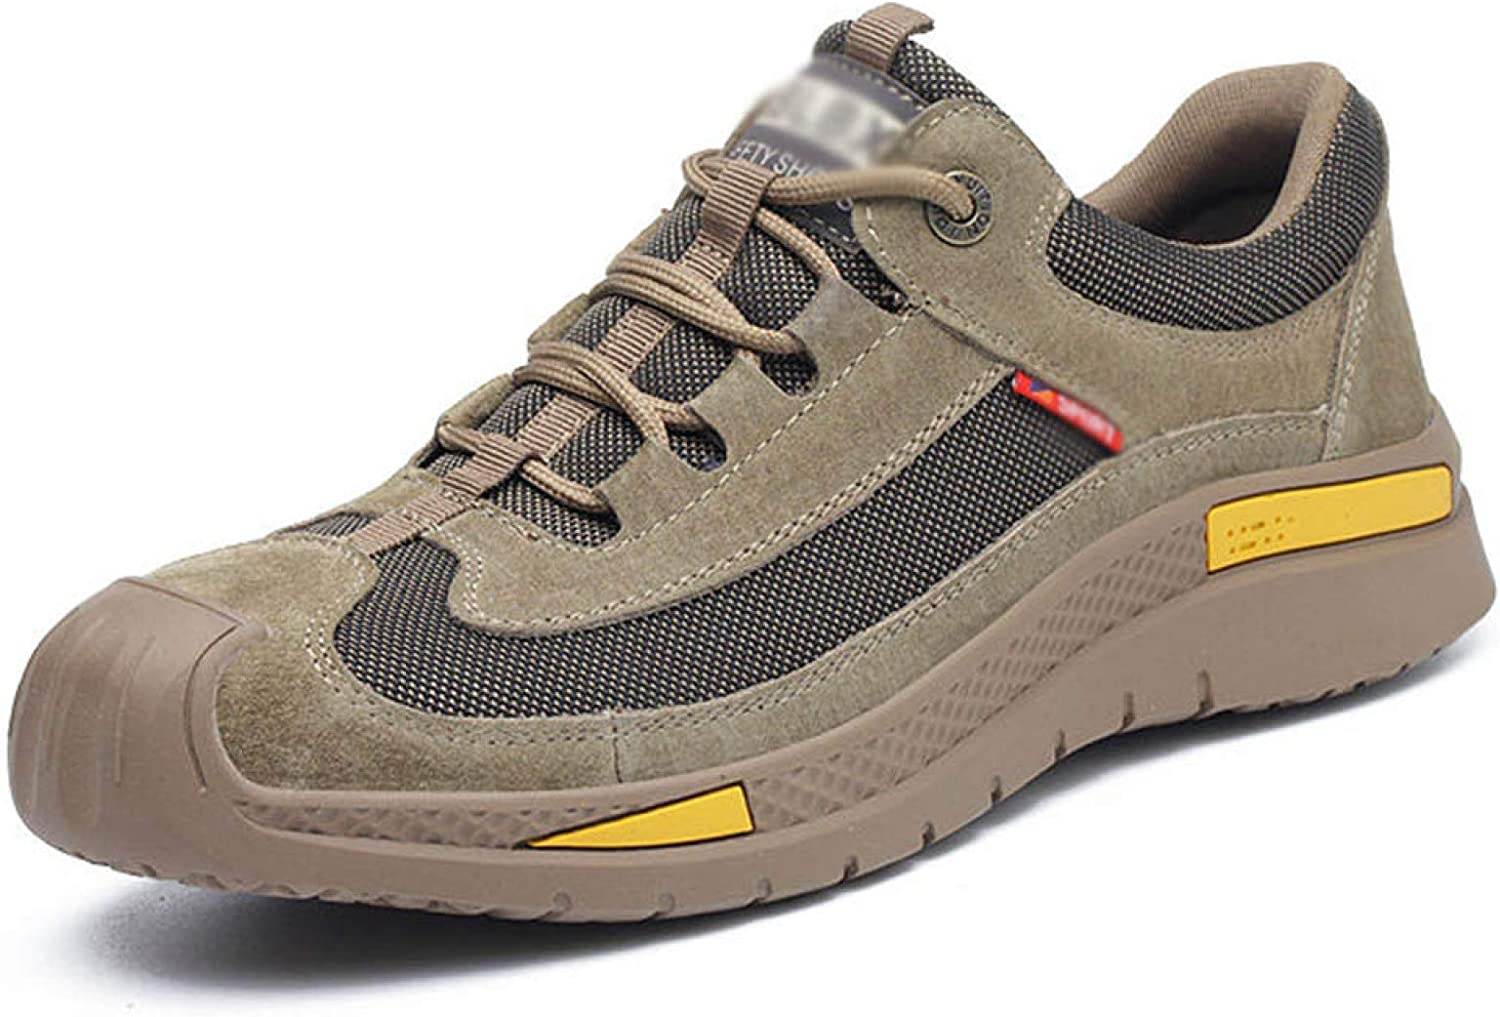 AGYE Men's Safety Shoes,Industrial Construction Shoe Steel Toe Trainers Lightweight Work Shoes Breathable Protective Work Sneakers,Khaki-40